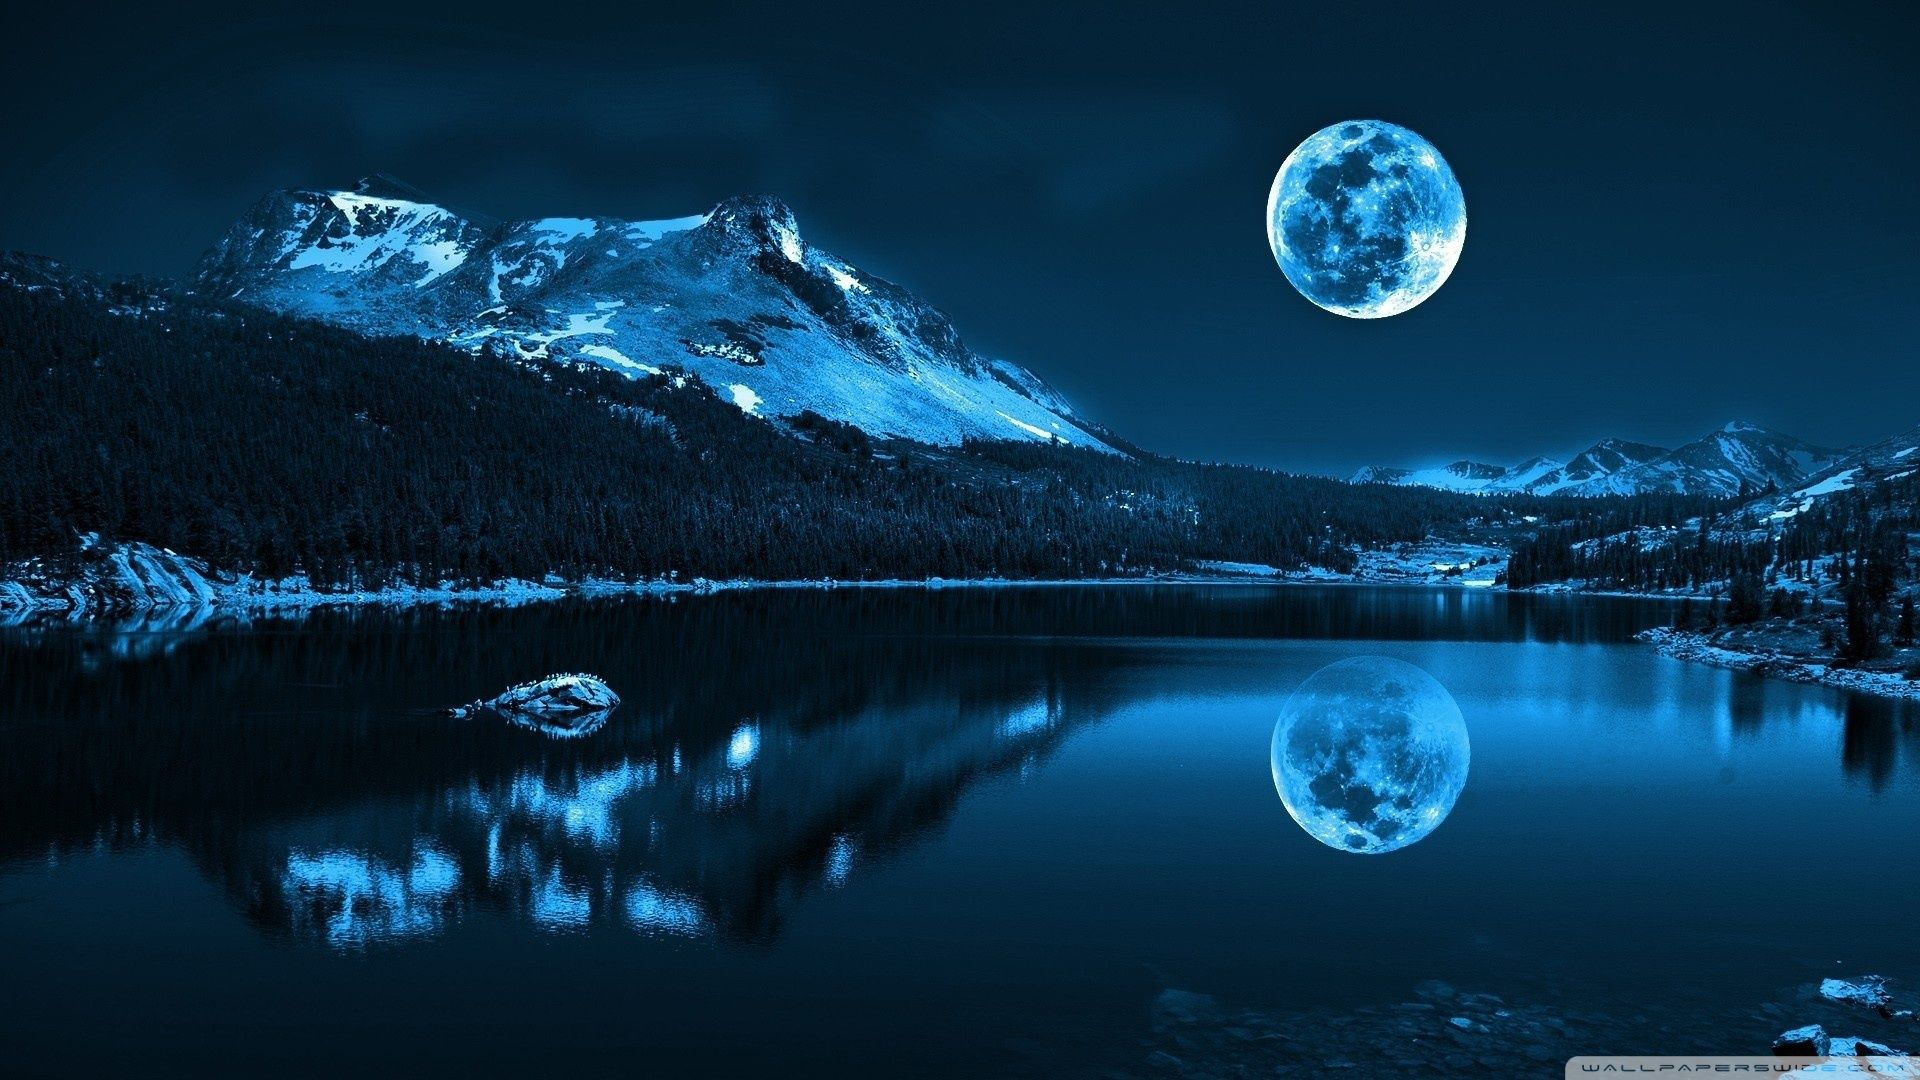 Moonlight Night Ultra Hd Wallpaper For 4k Uhd Widescreen Desktop Tablet Smartphone Aero In 2020 Beautiful Nature Beautiful Moon Beautiful Landscapes